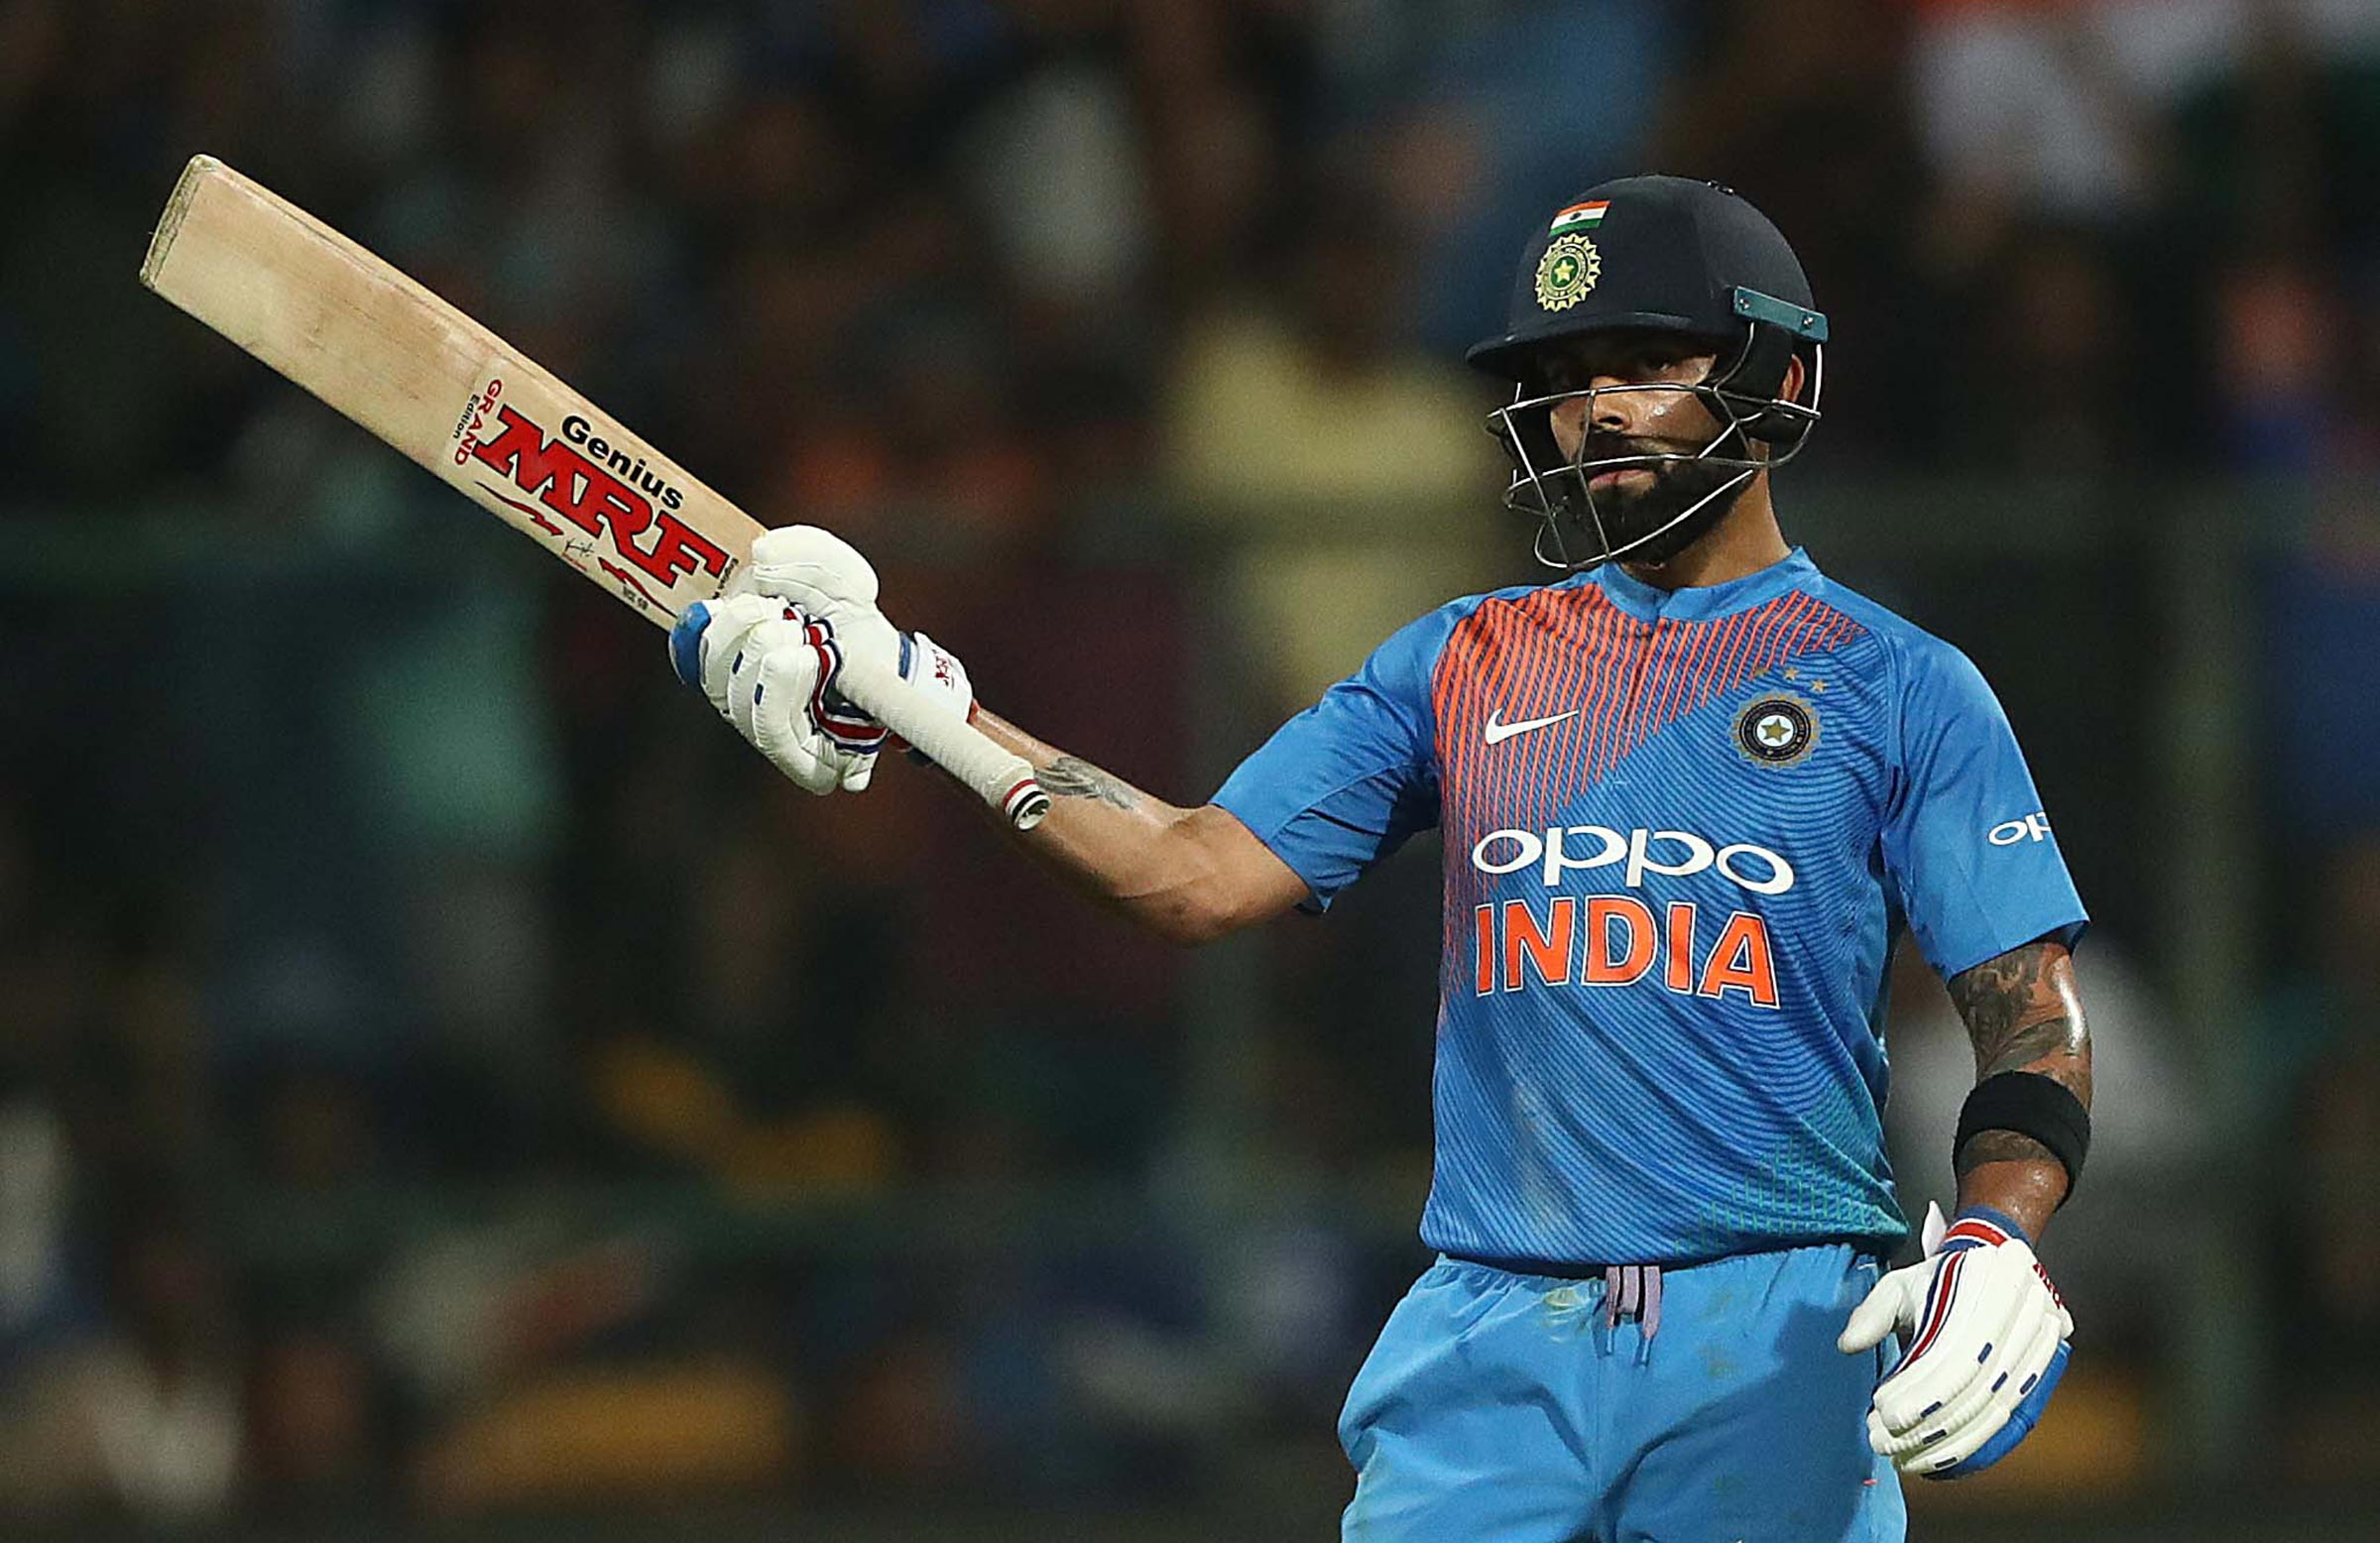 Captain Kohli was at his brilliant best // Getty